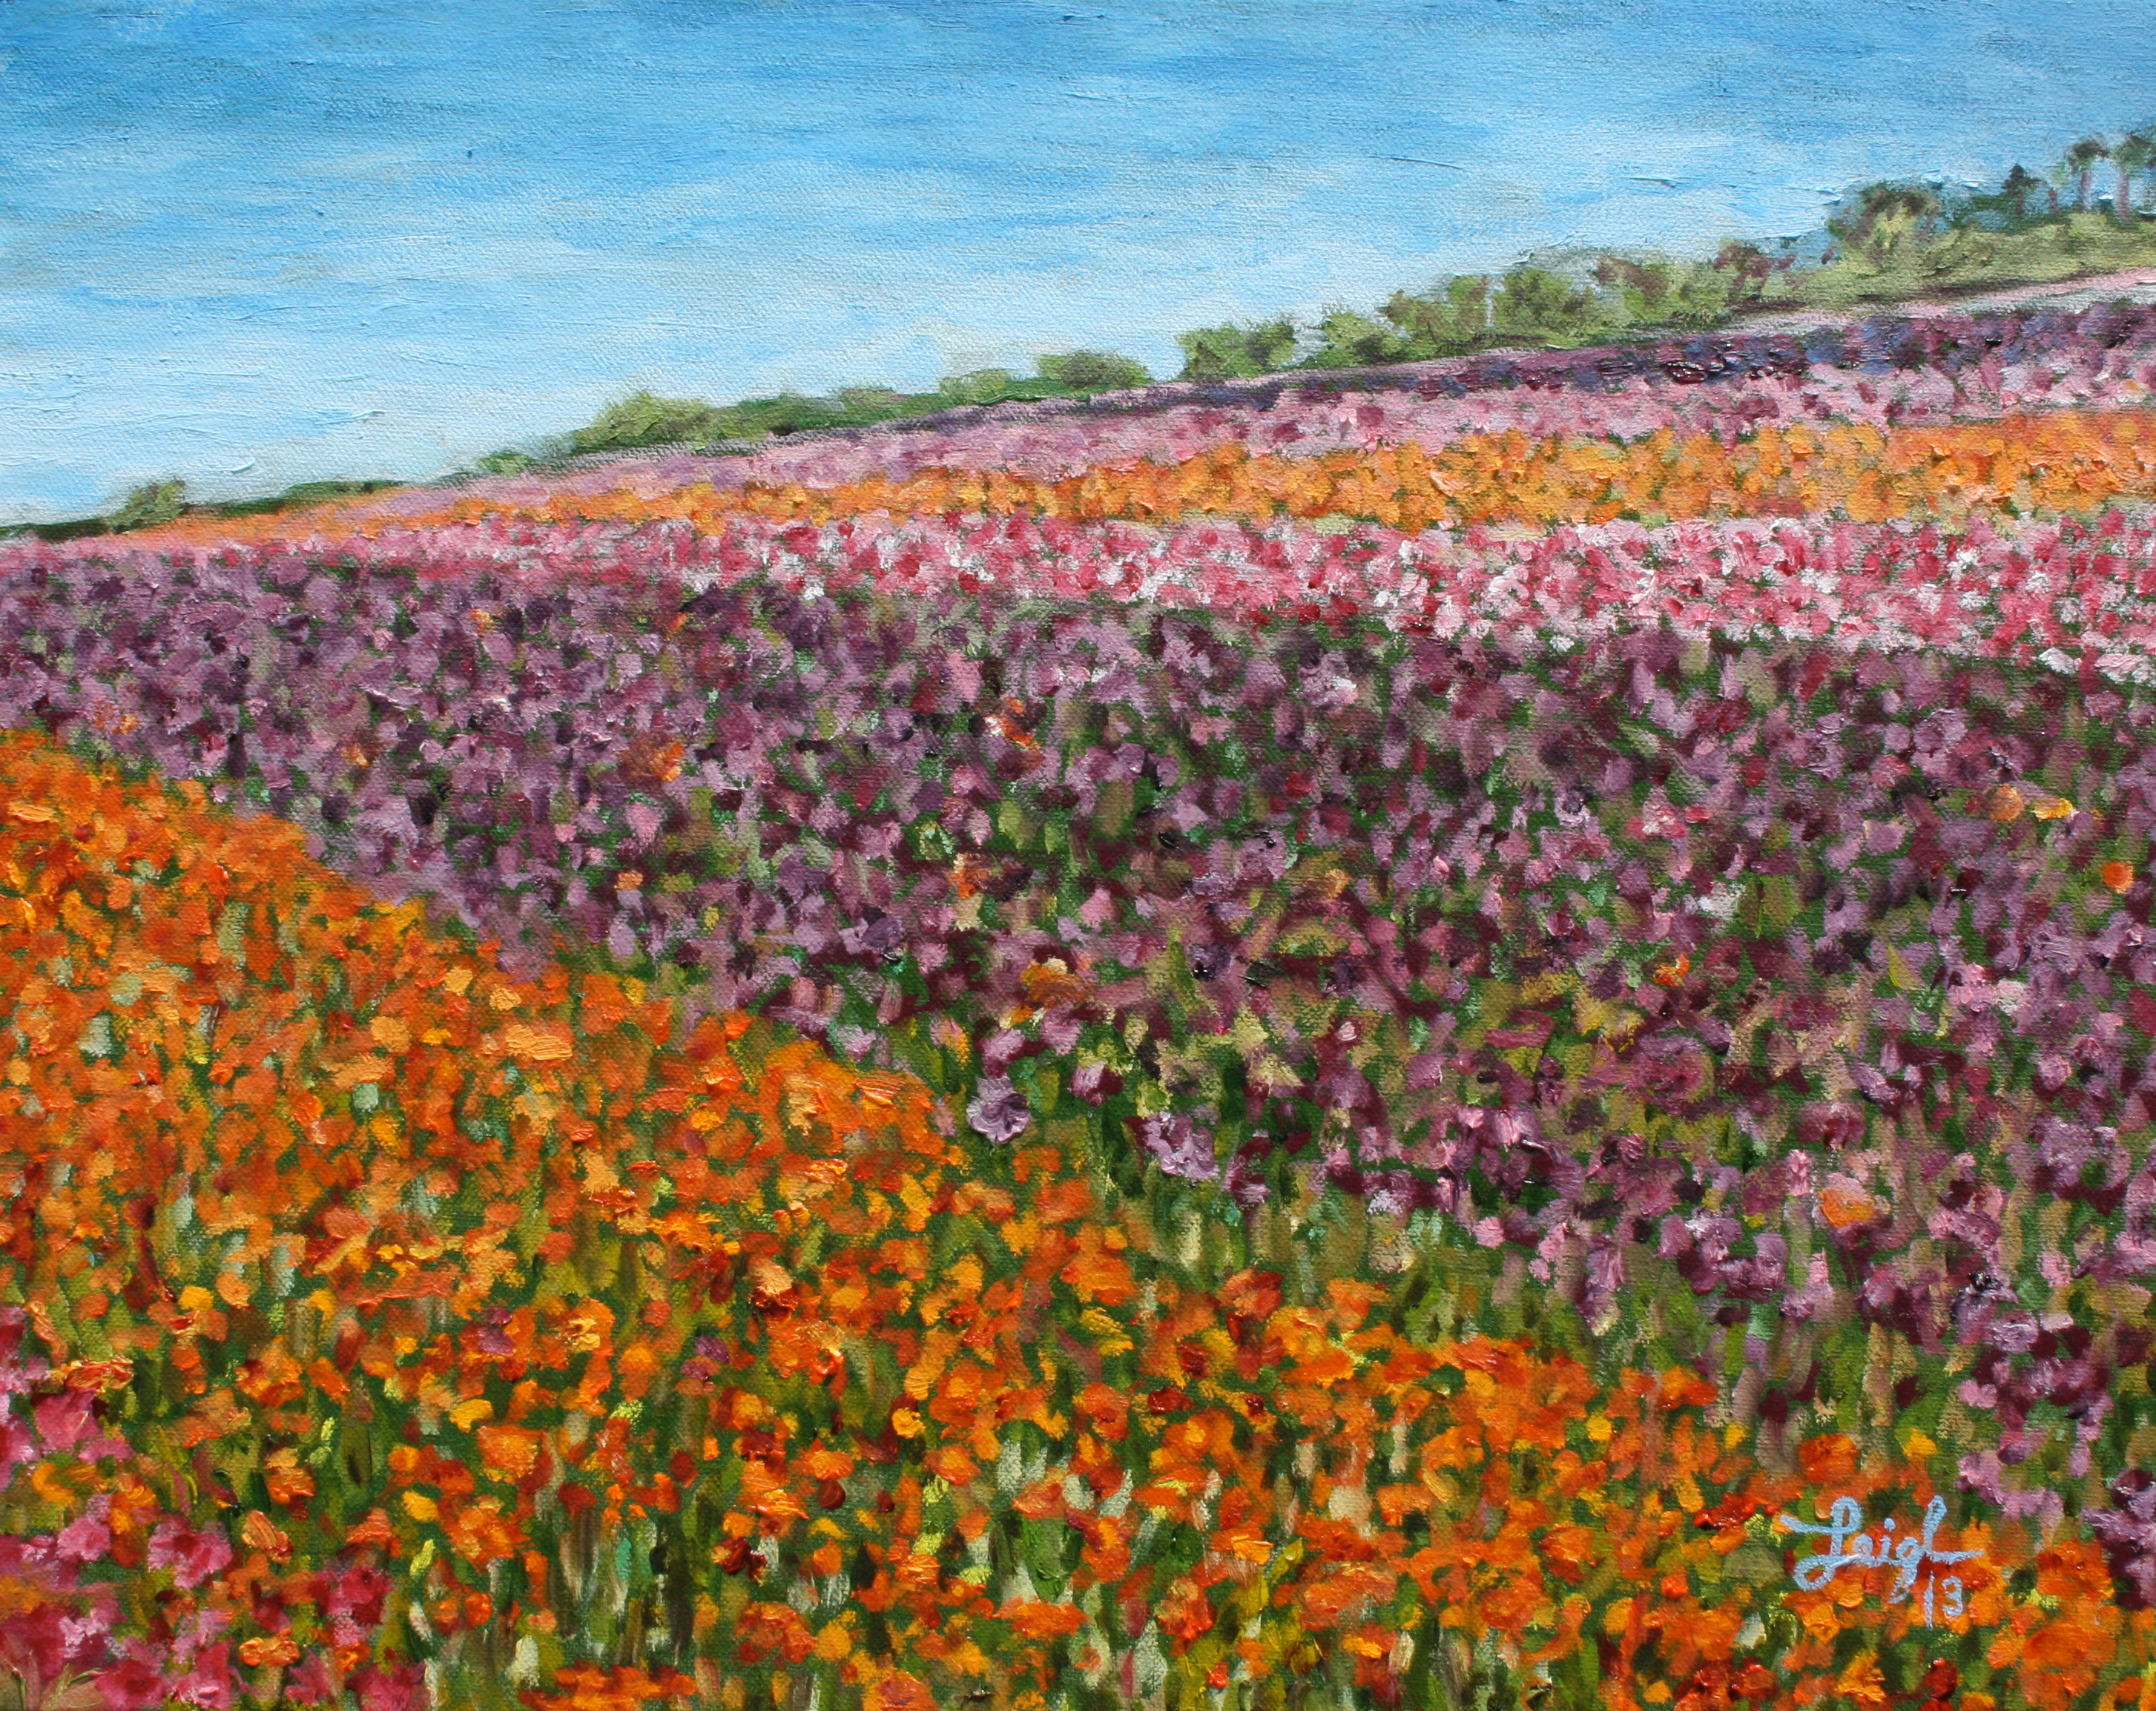 Carlsbad Flower Fields #1  ~   Martha Levine, Mt. Gretna, PA 2013  •  20 x 16